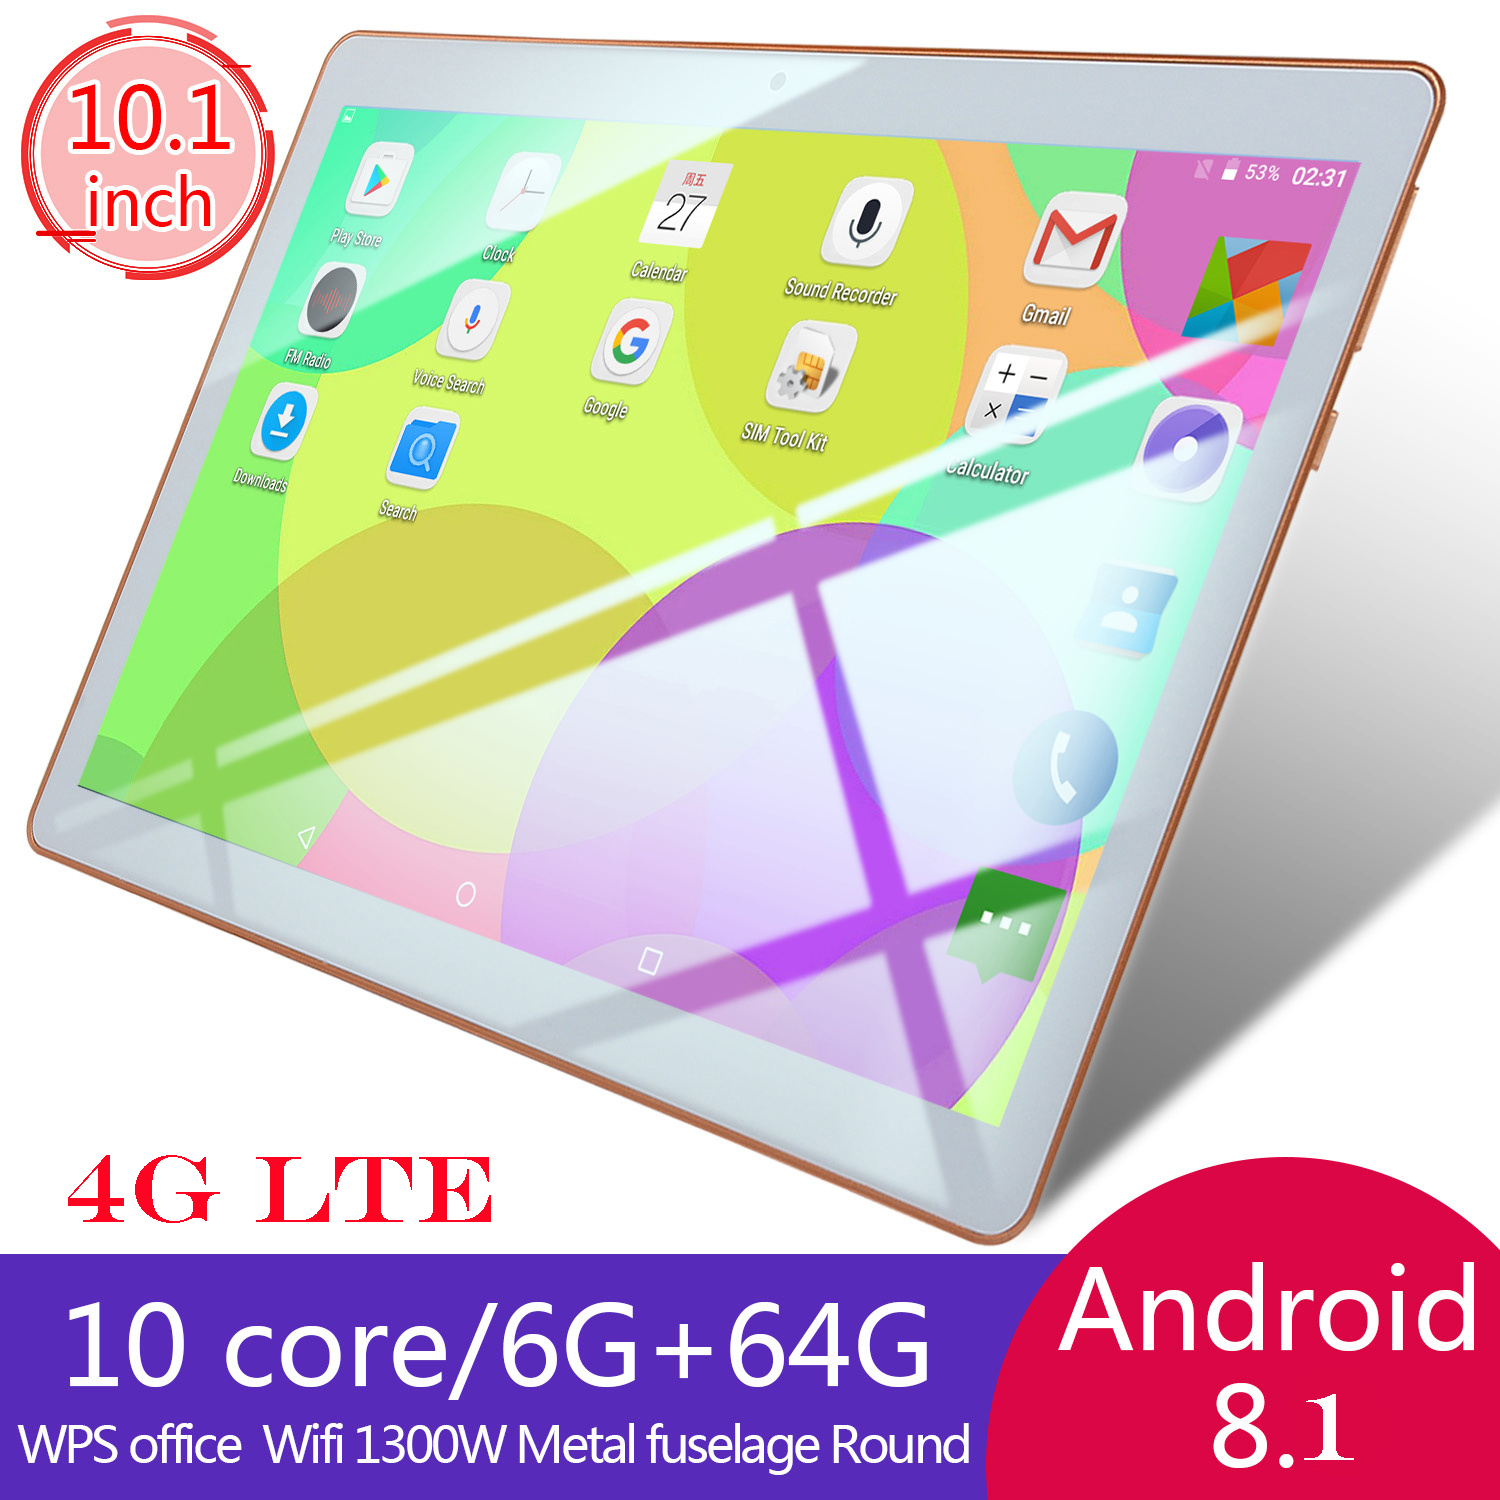 Details about 10 1 Inch WIFI/4G-LTE HD PC Tablet Android 8 1 Bluetooth  6+64G 2 SIM&Camera GPS